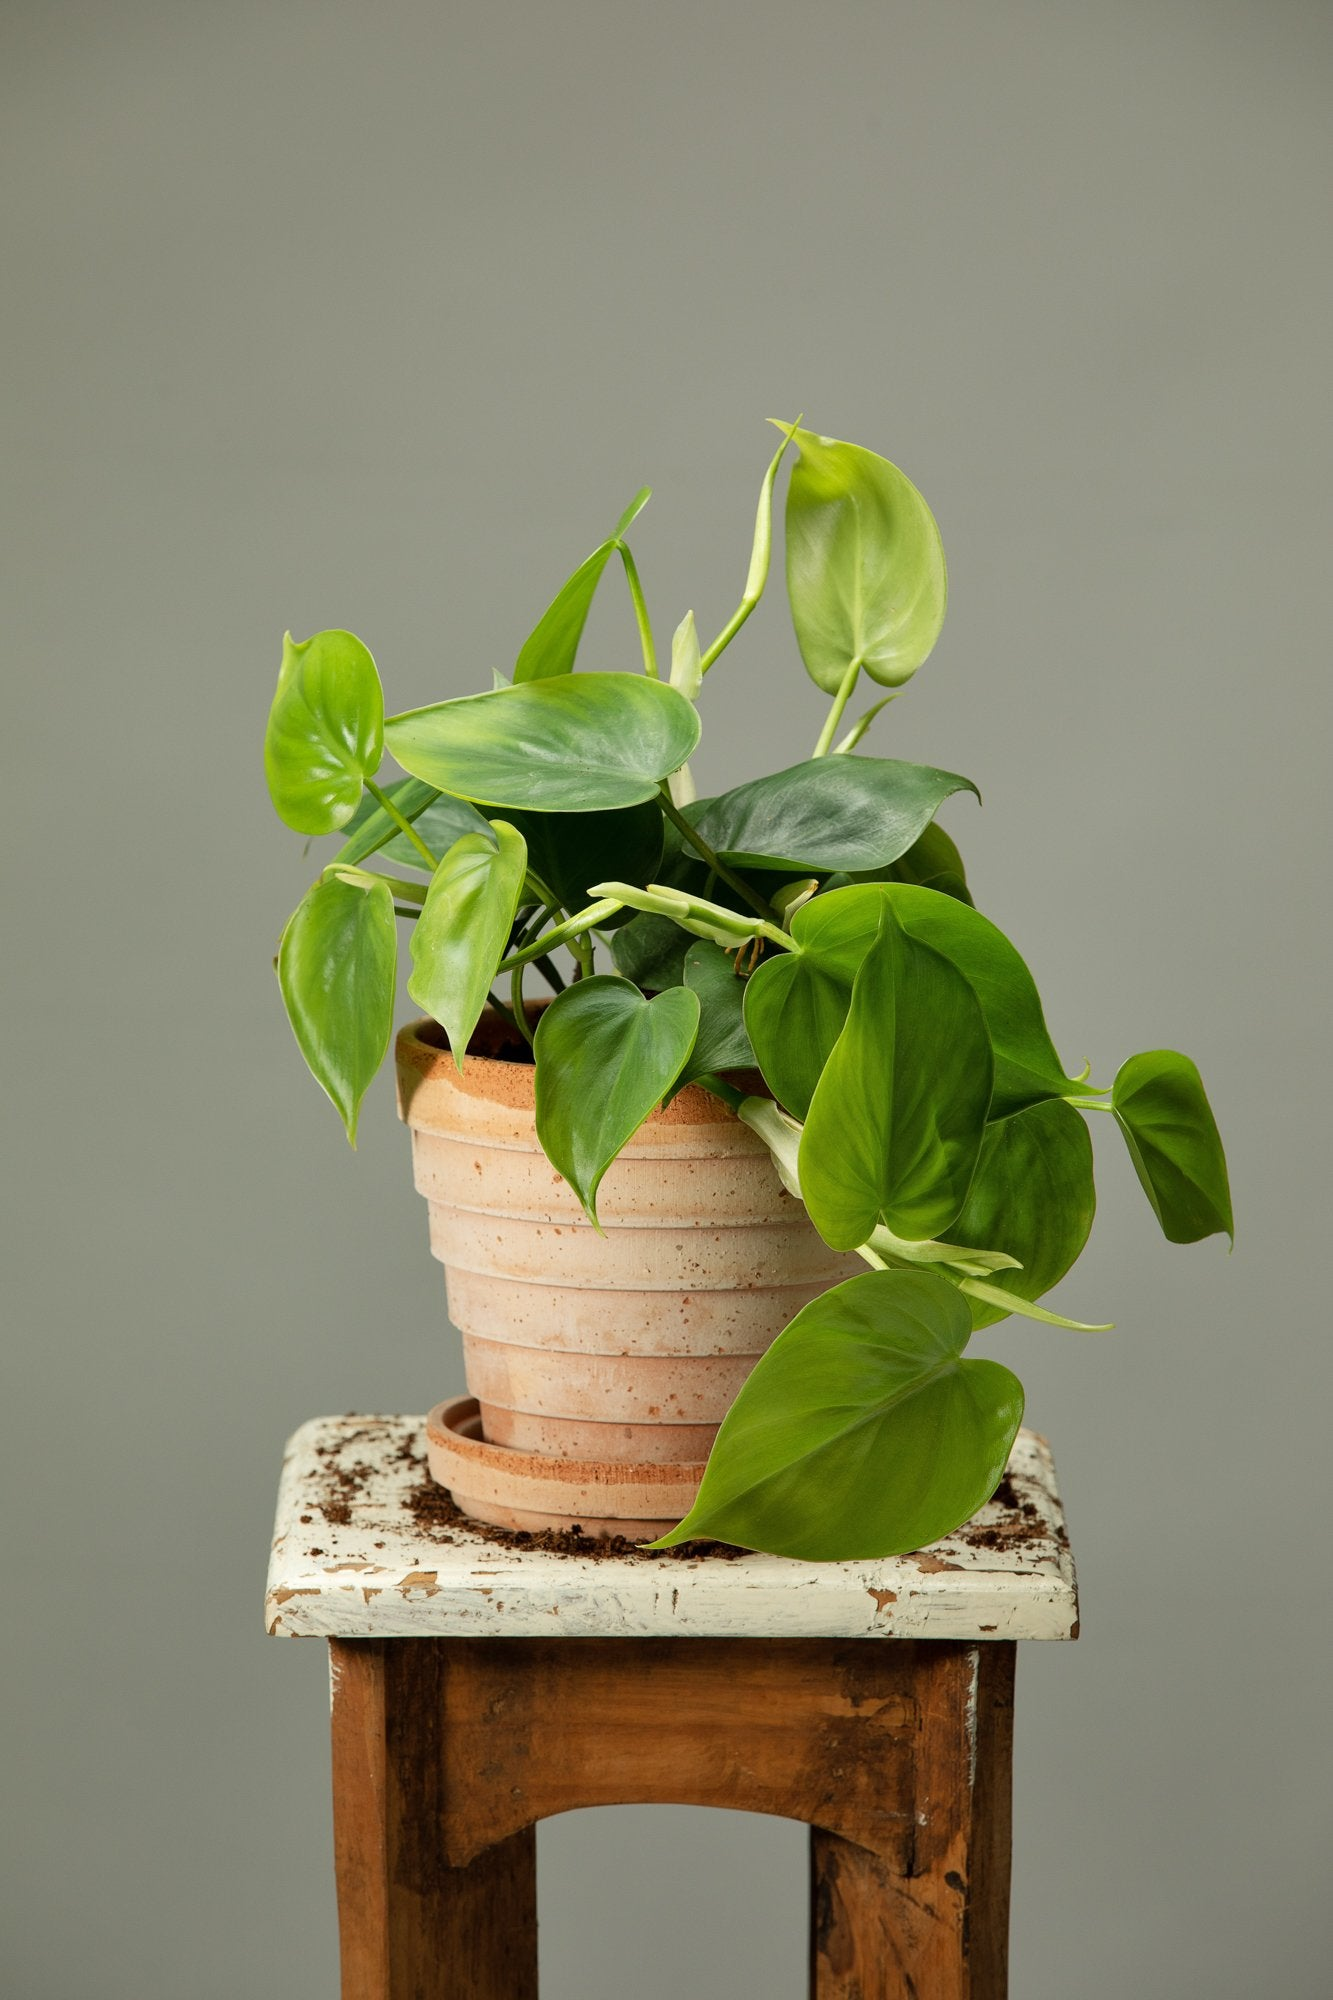 The heartleaf philodendron trailing house plant in a Berg's Venus Rosa houseplant with drainage and pot base